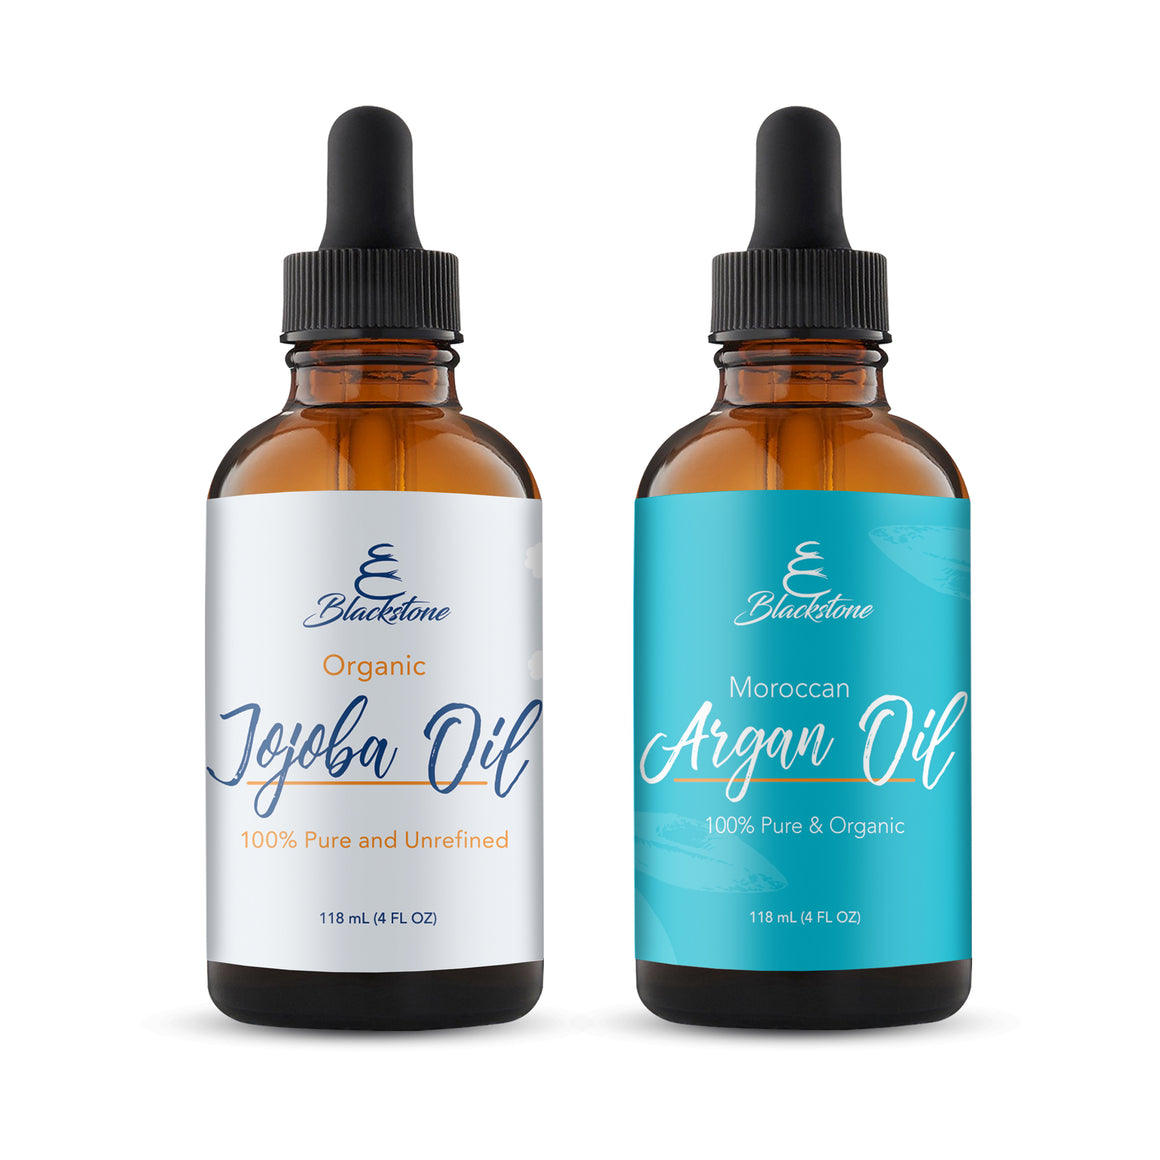 Deluxe Beauty Kit - 2 pack Organic Moroccan Argan Oil and Jojoba Oil 4oz each - All Natural Moistuizer for Hair, Face and Body